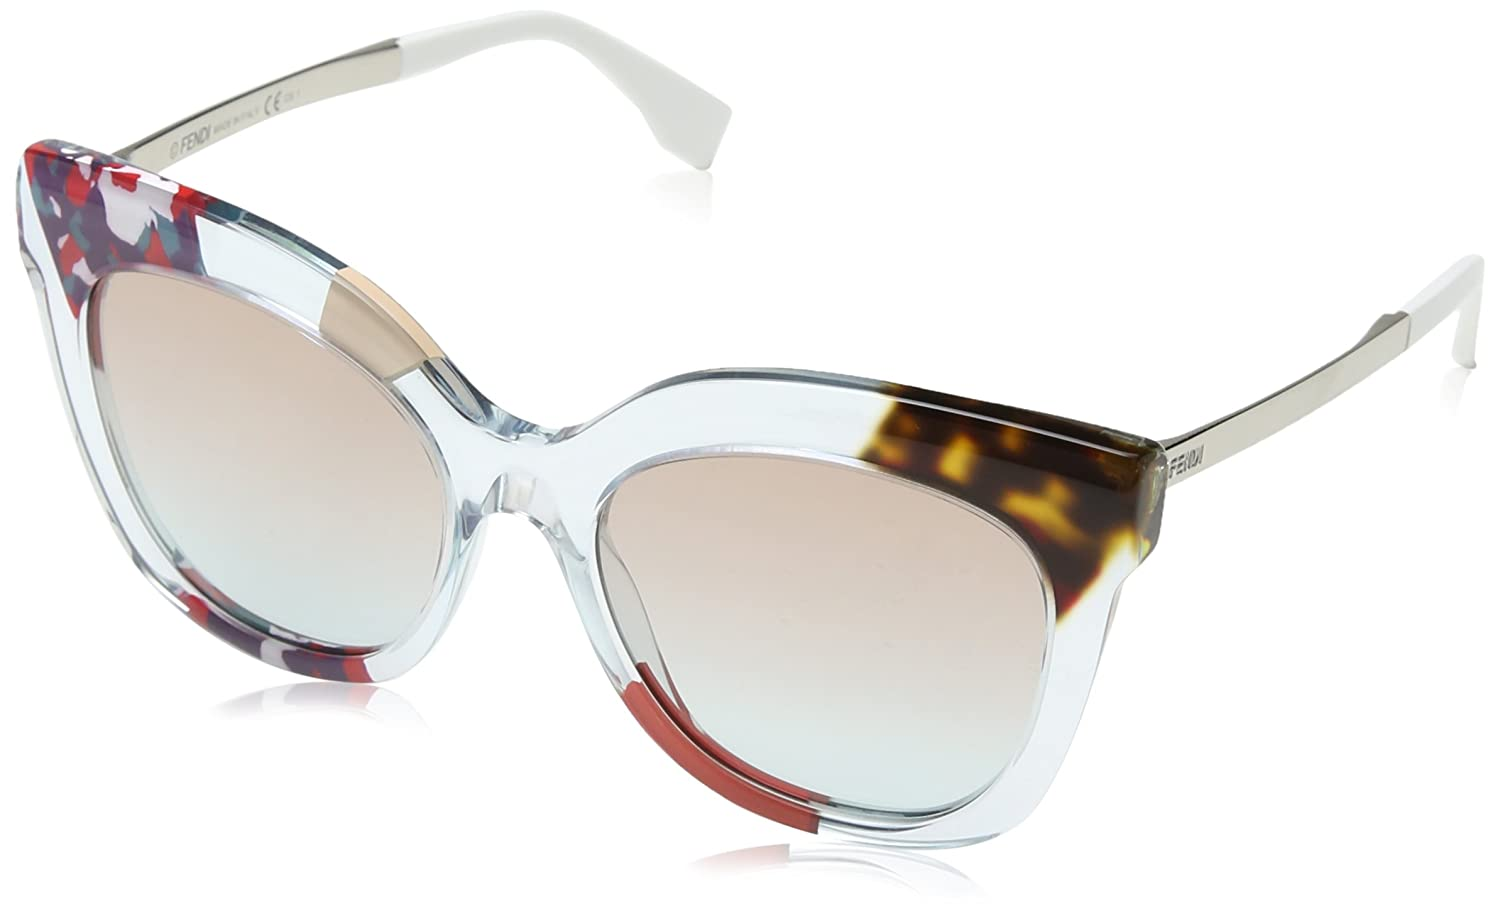 7b4271778871 Amazon.com  Sunglasses Fendi 179 S 0TKV Azure Crystal E6 brown azure lens   Shoes